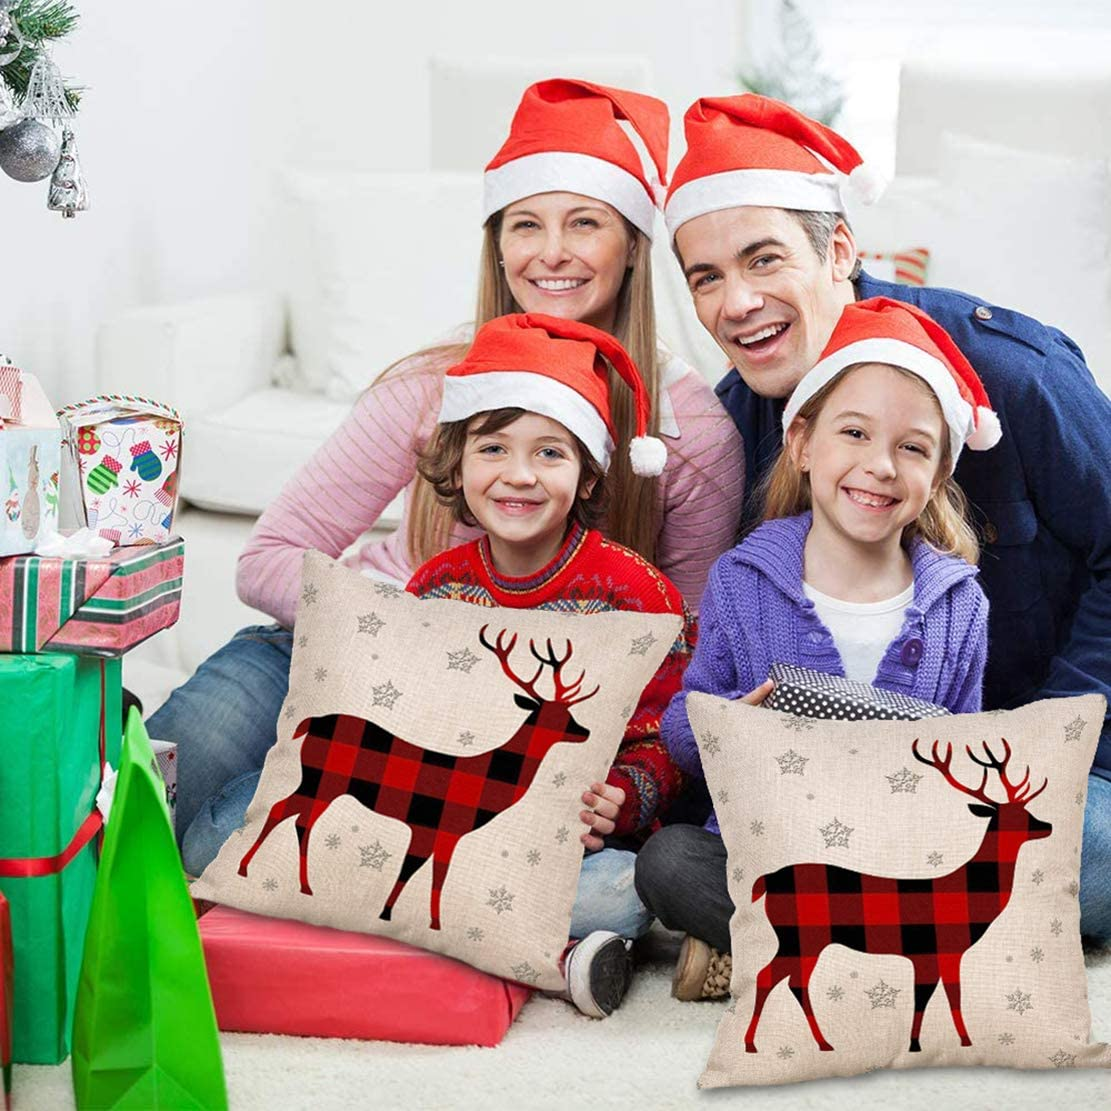 9ABOY Throw Pillow Covers Pack of 2 Christmas Square Pillowcase Supersoft Cotton Linen Home Decor Decorations for Sofa Couch Bed Chair Bedroom Car Reindeer Decorative Cushion Case 18x18-inch